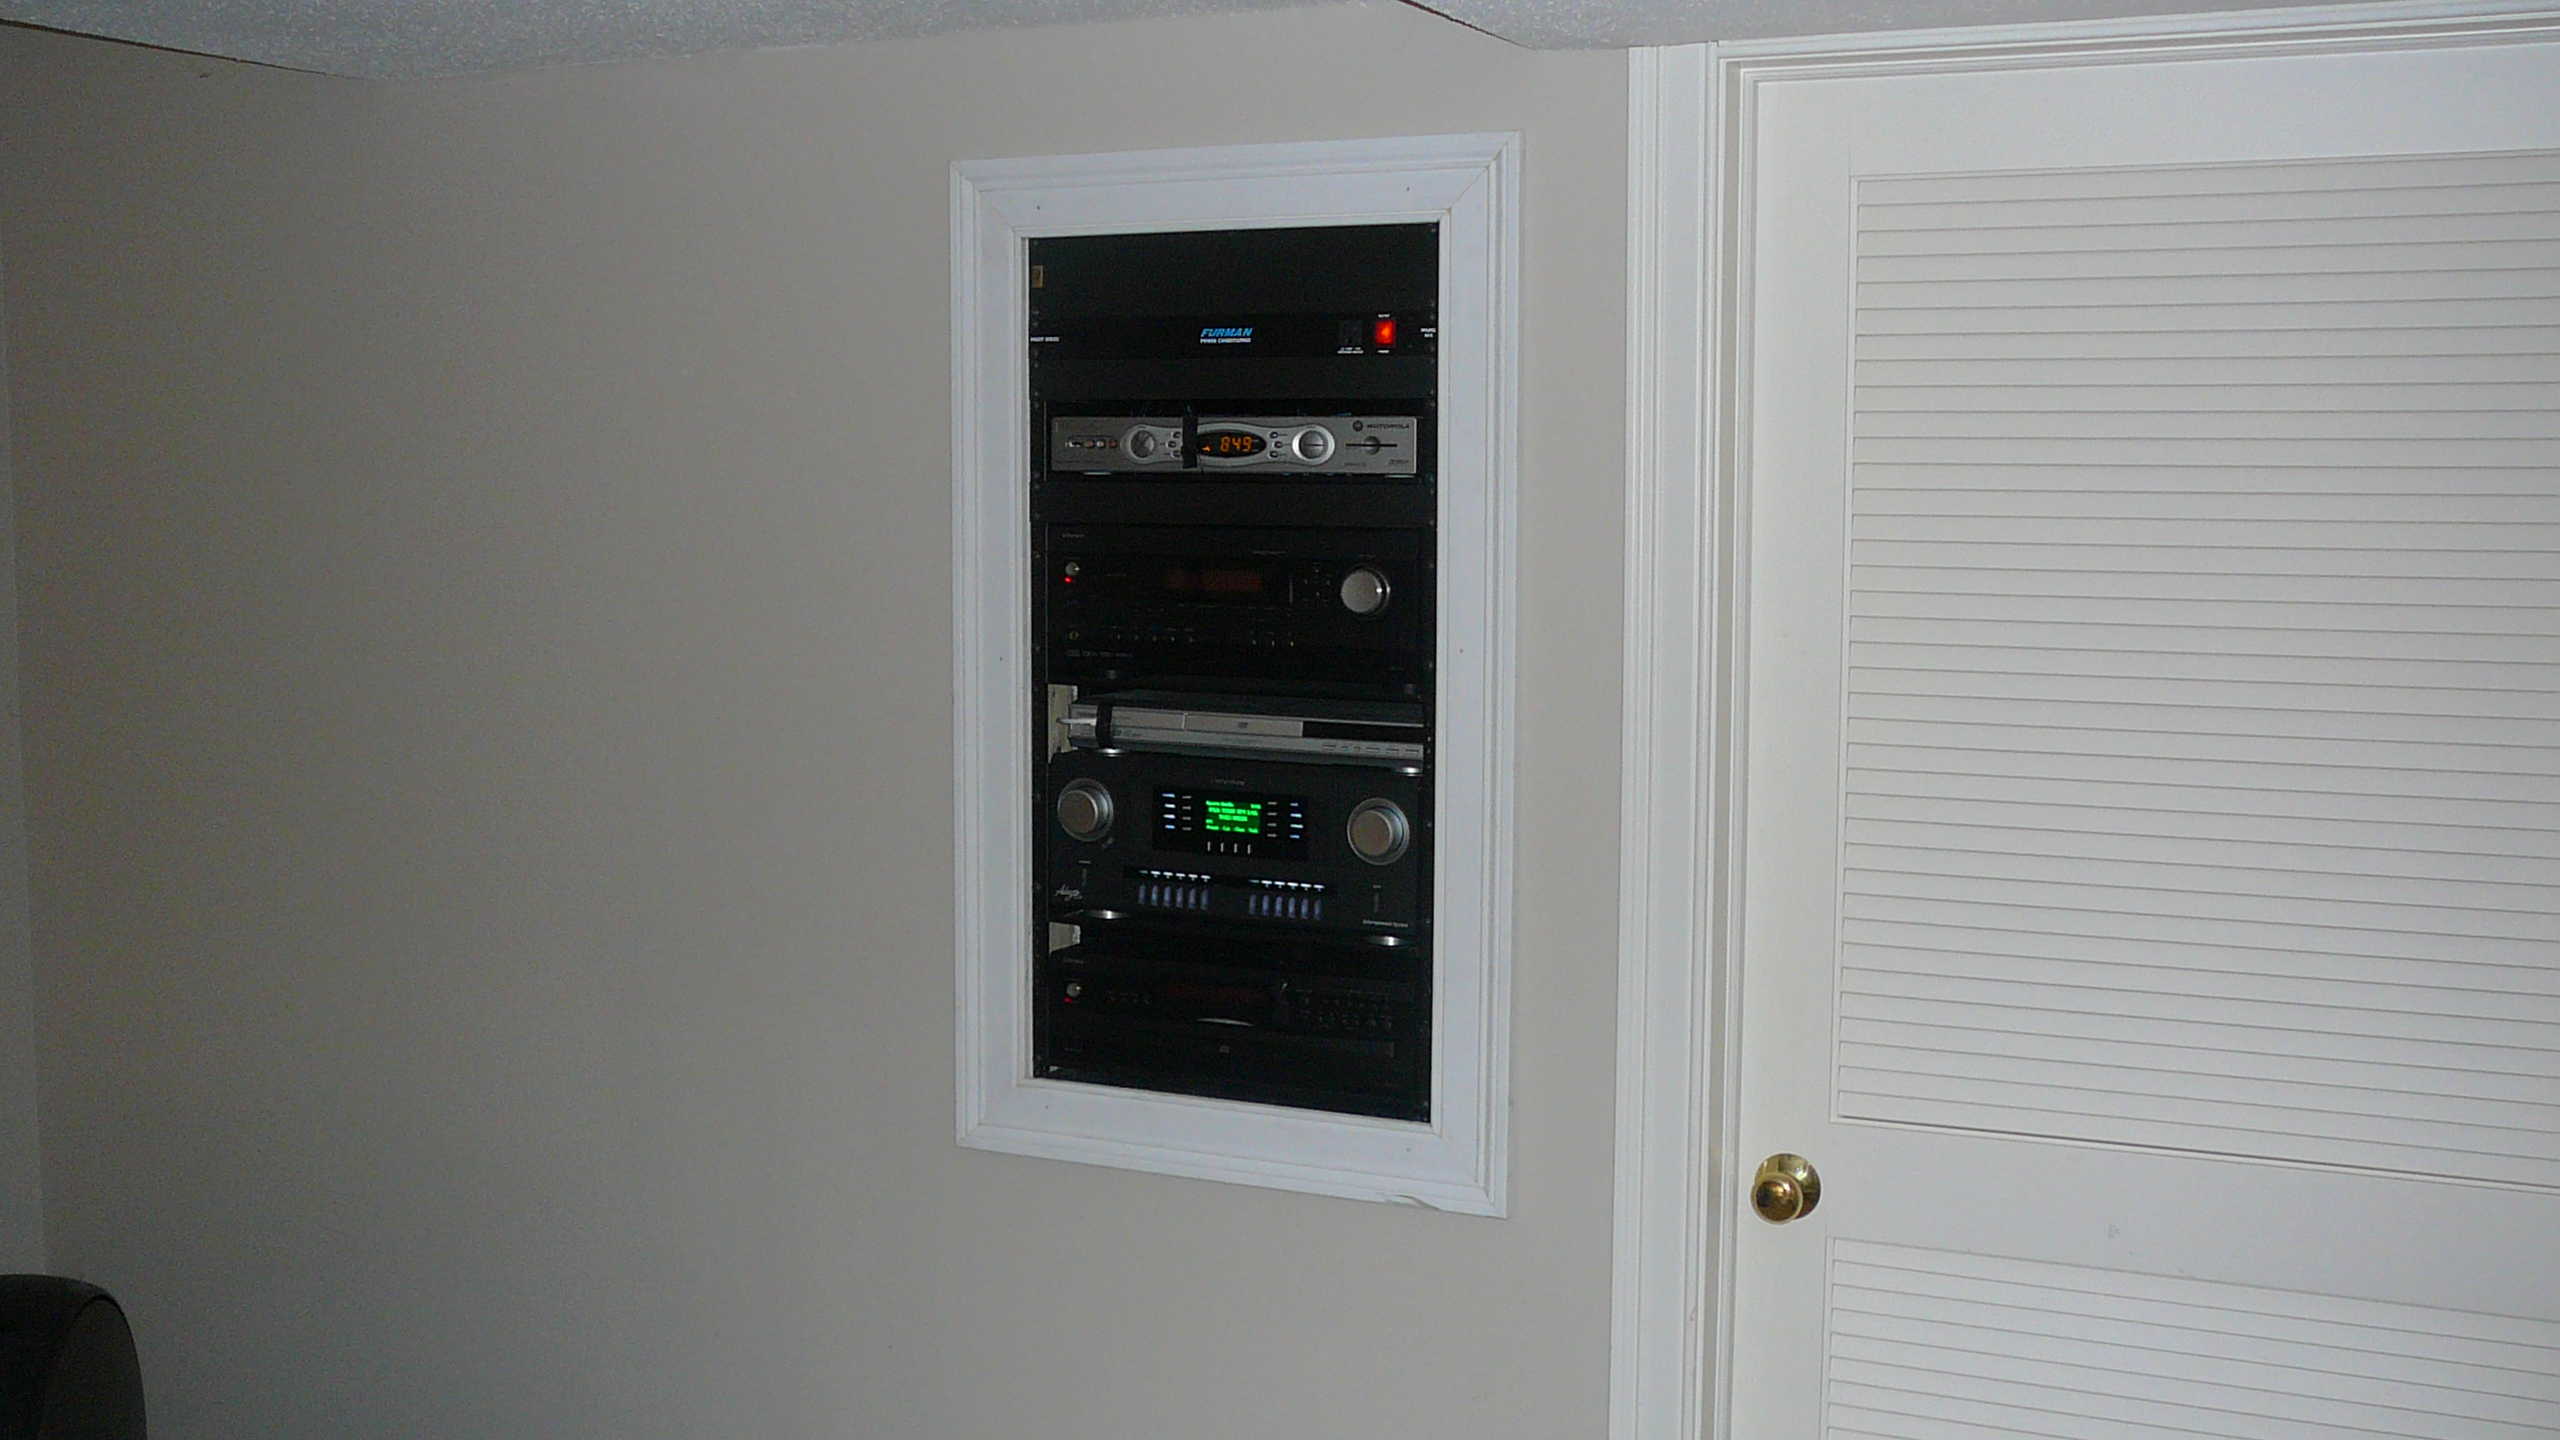 rack audio equipment systems cabinets products and hammond dci mfg cabinet visual server